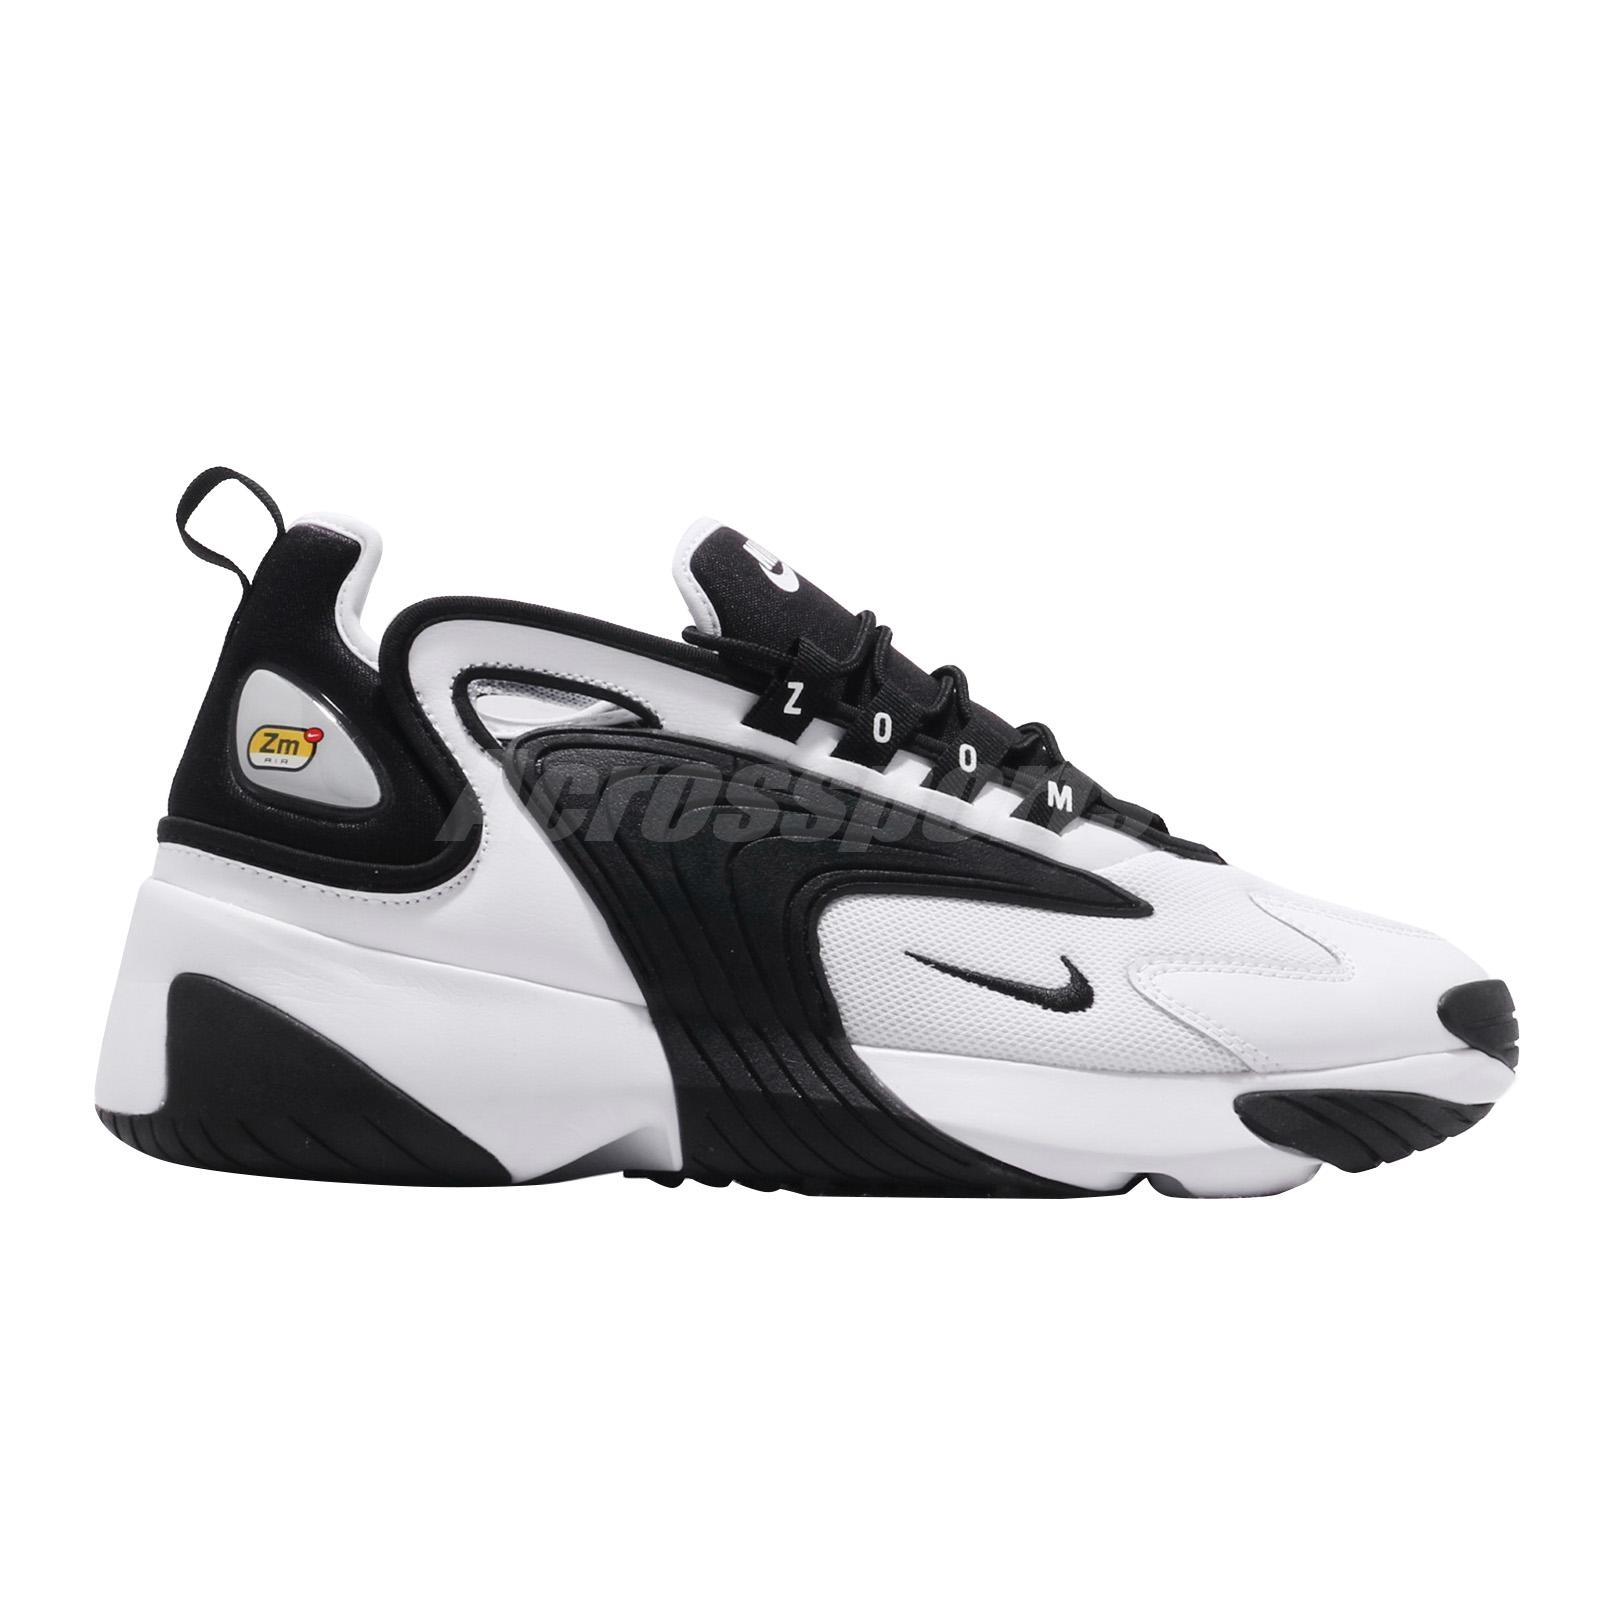 858eee2f1e99f Nike Zoom 2K ZM Air 2000 White Black Men Lifestyle Shoes Sneakers ...